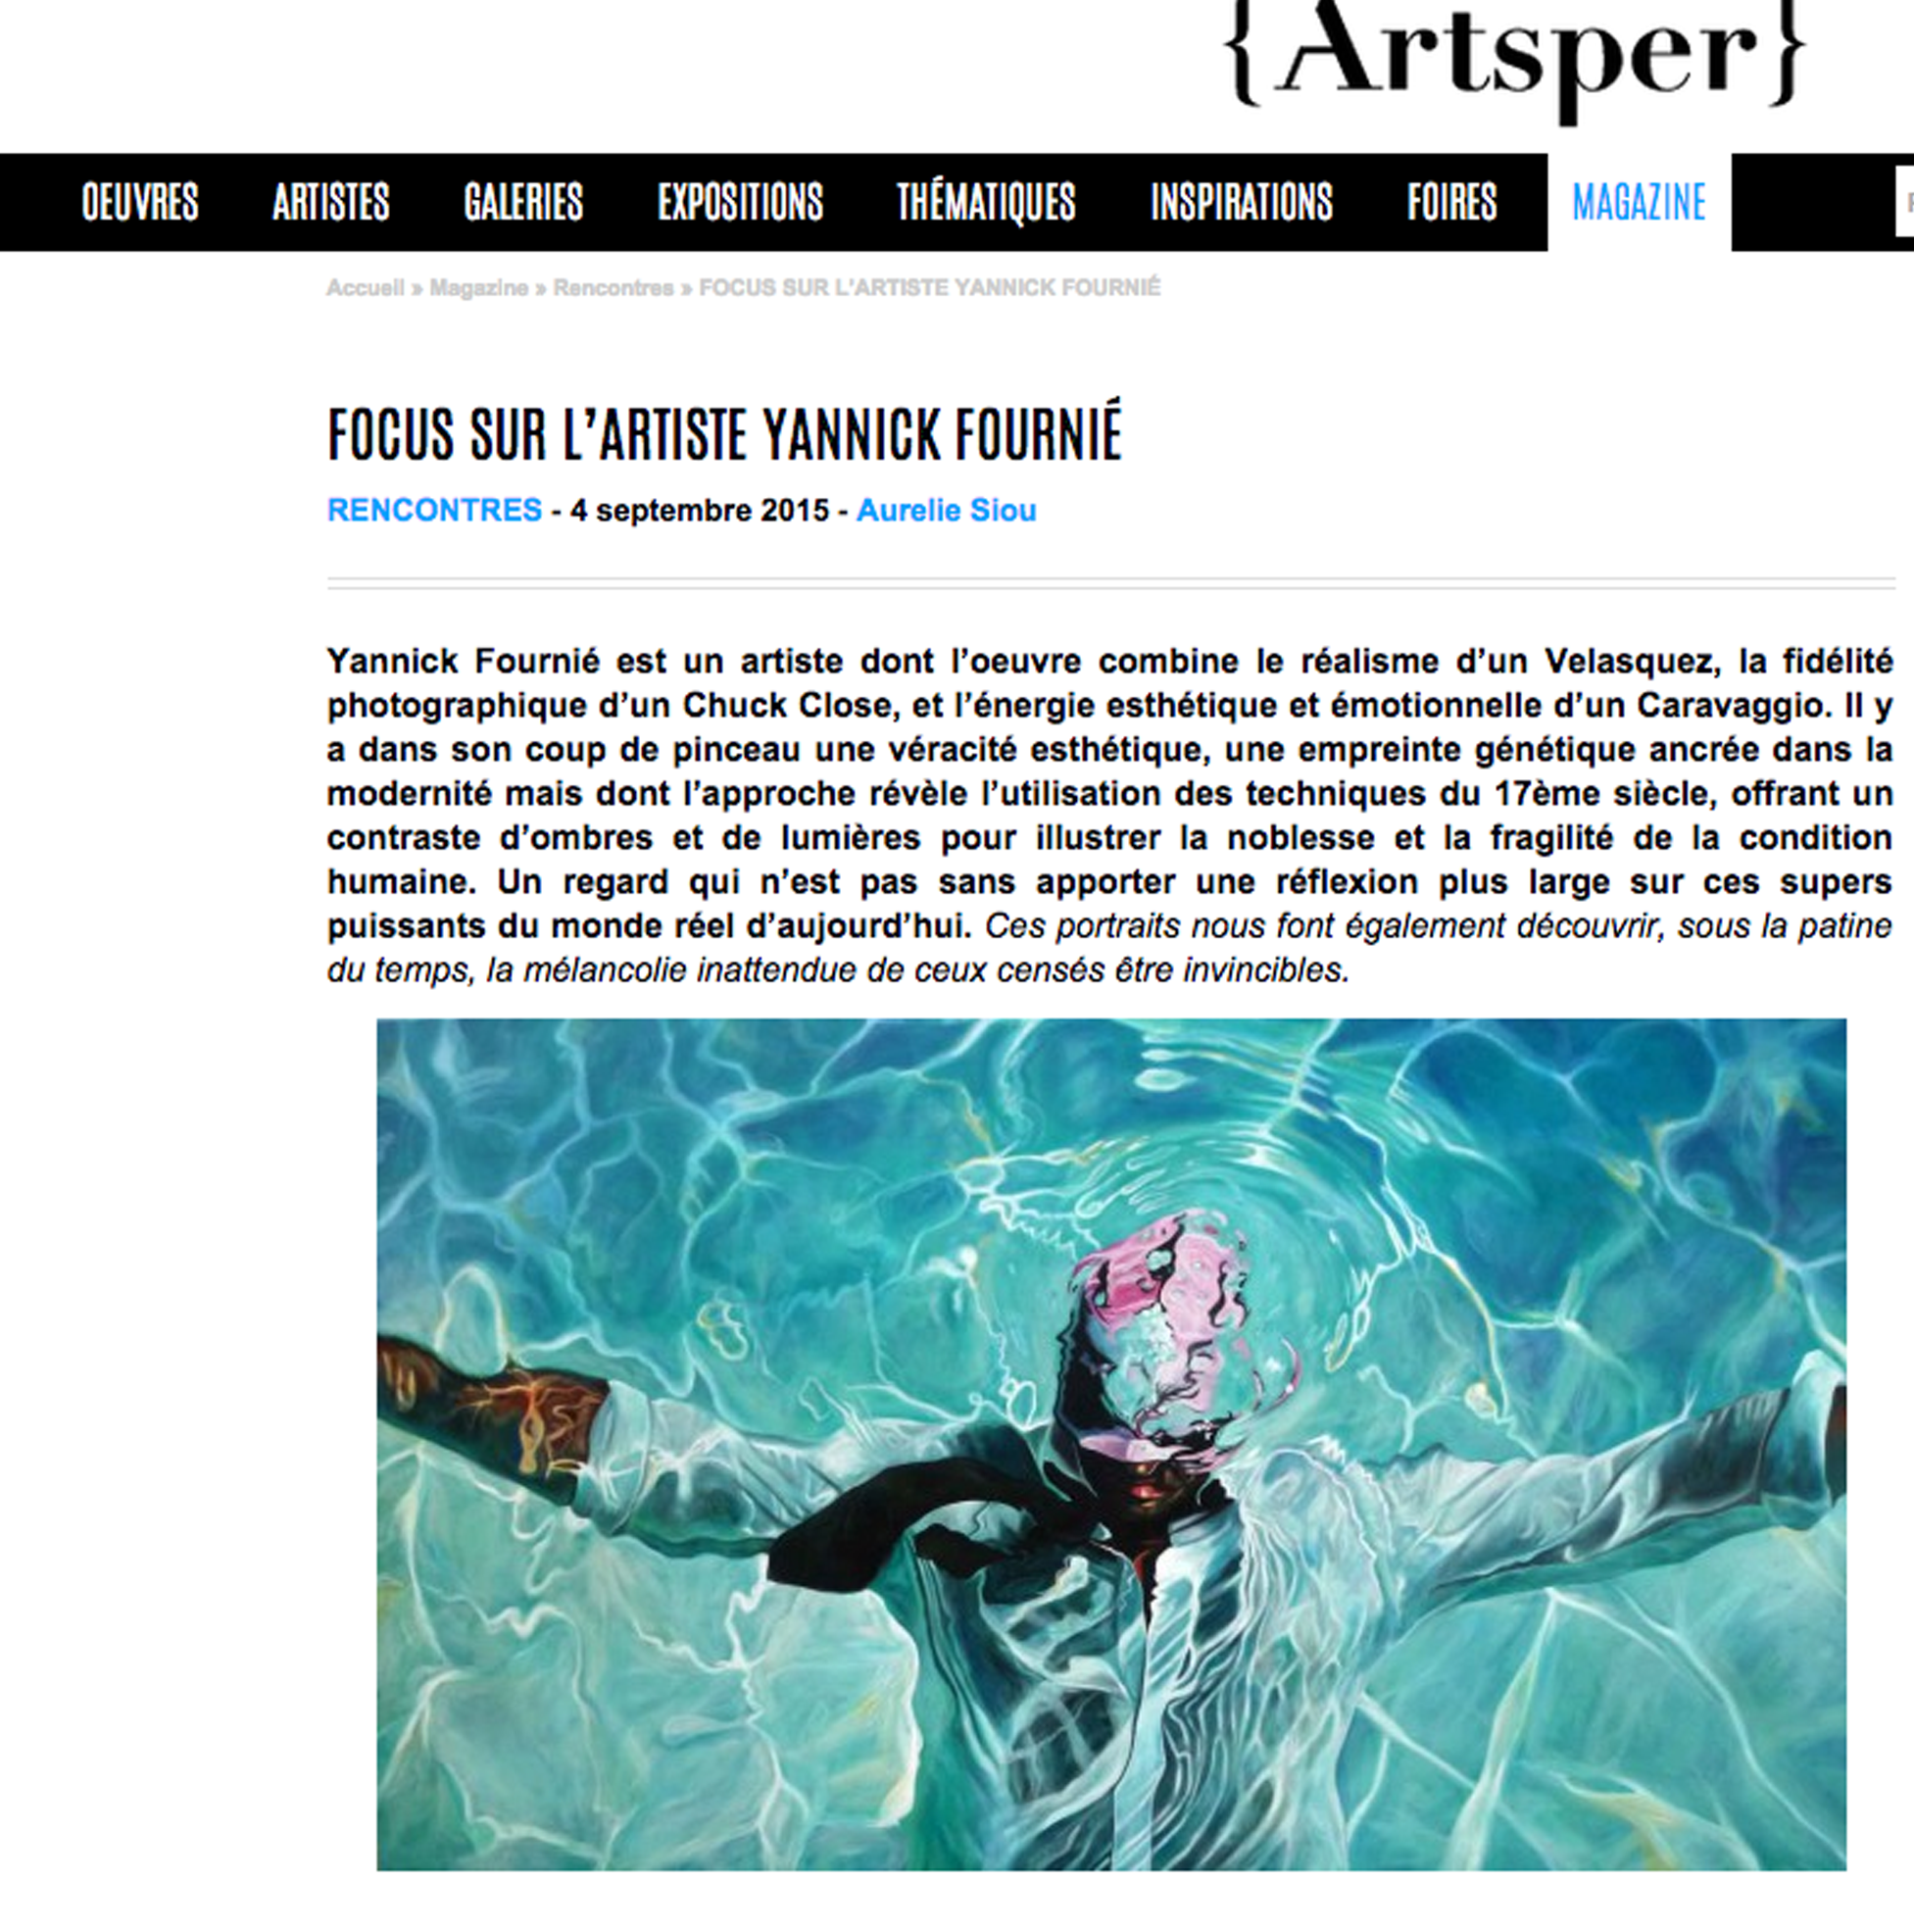 ARTSPER / France / Septembre 2015